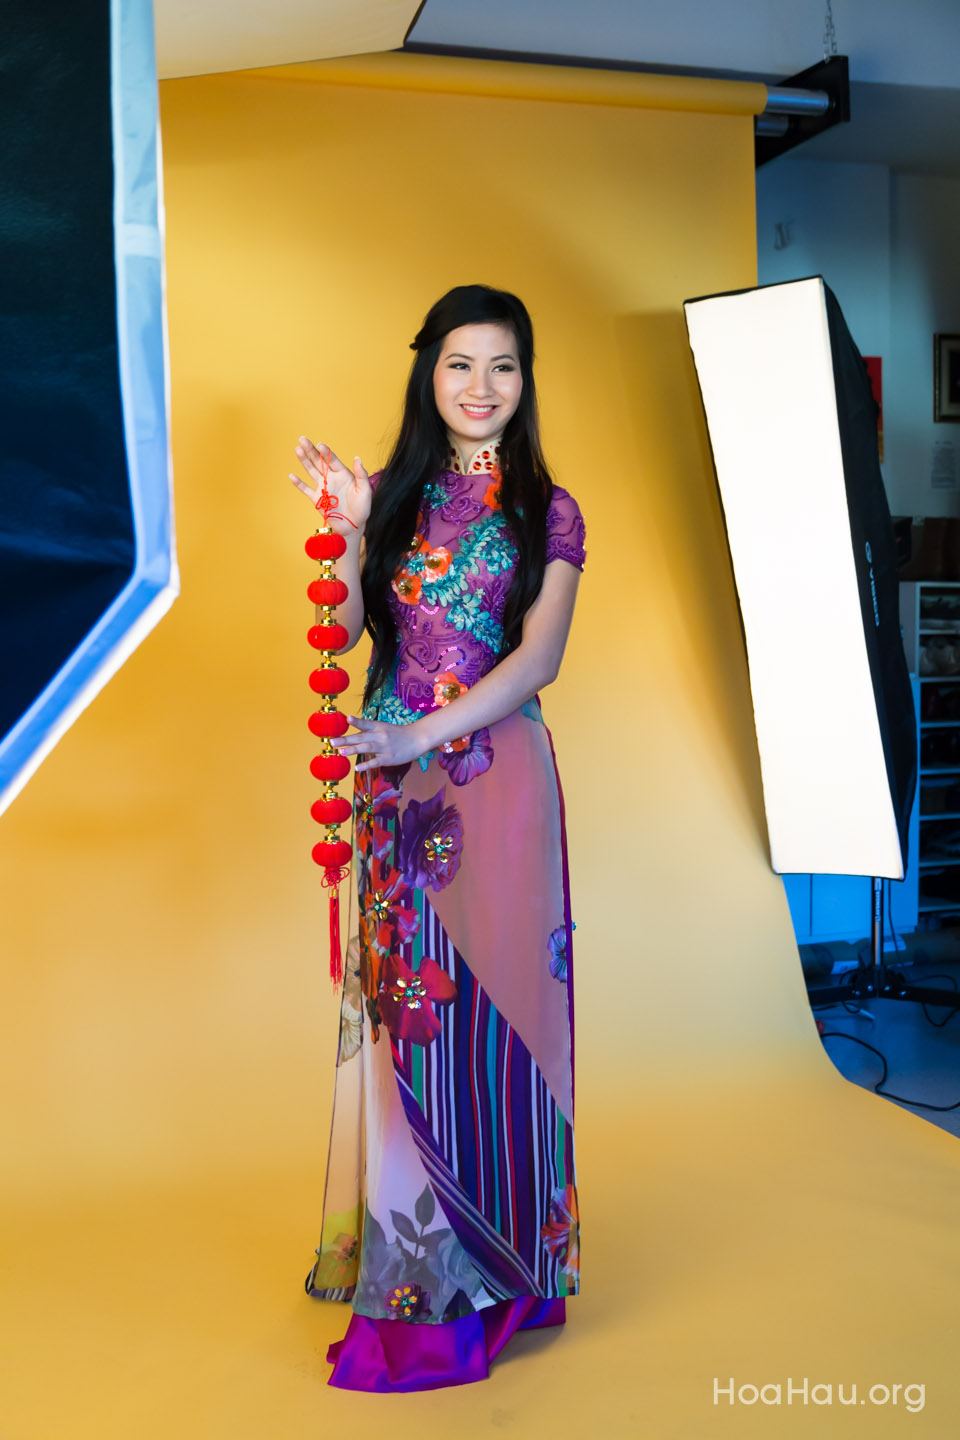 Calendar 2014 Photoshoot - Miss Vietnam of Northern California 2014 - Image 116